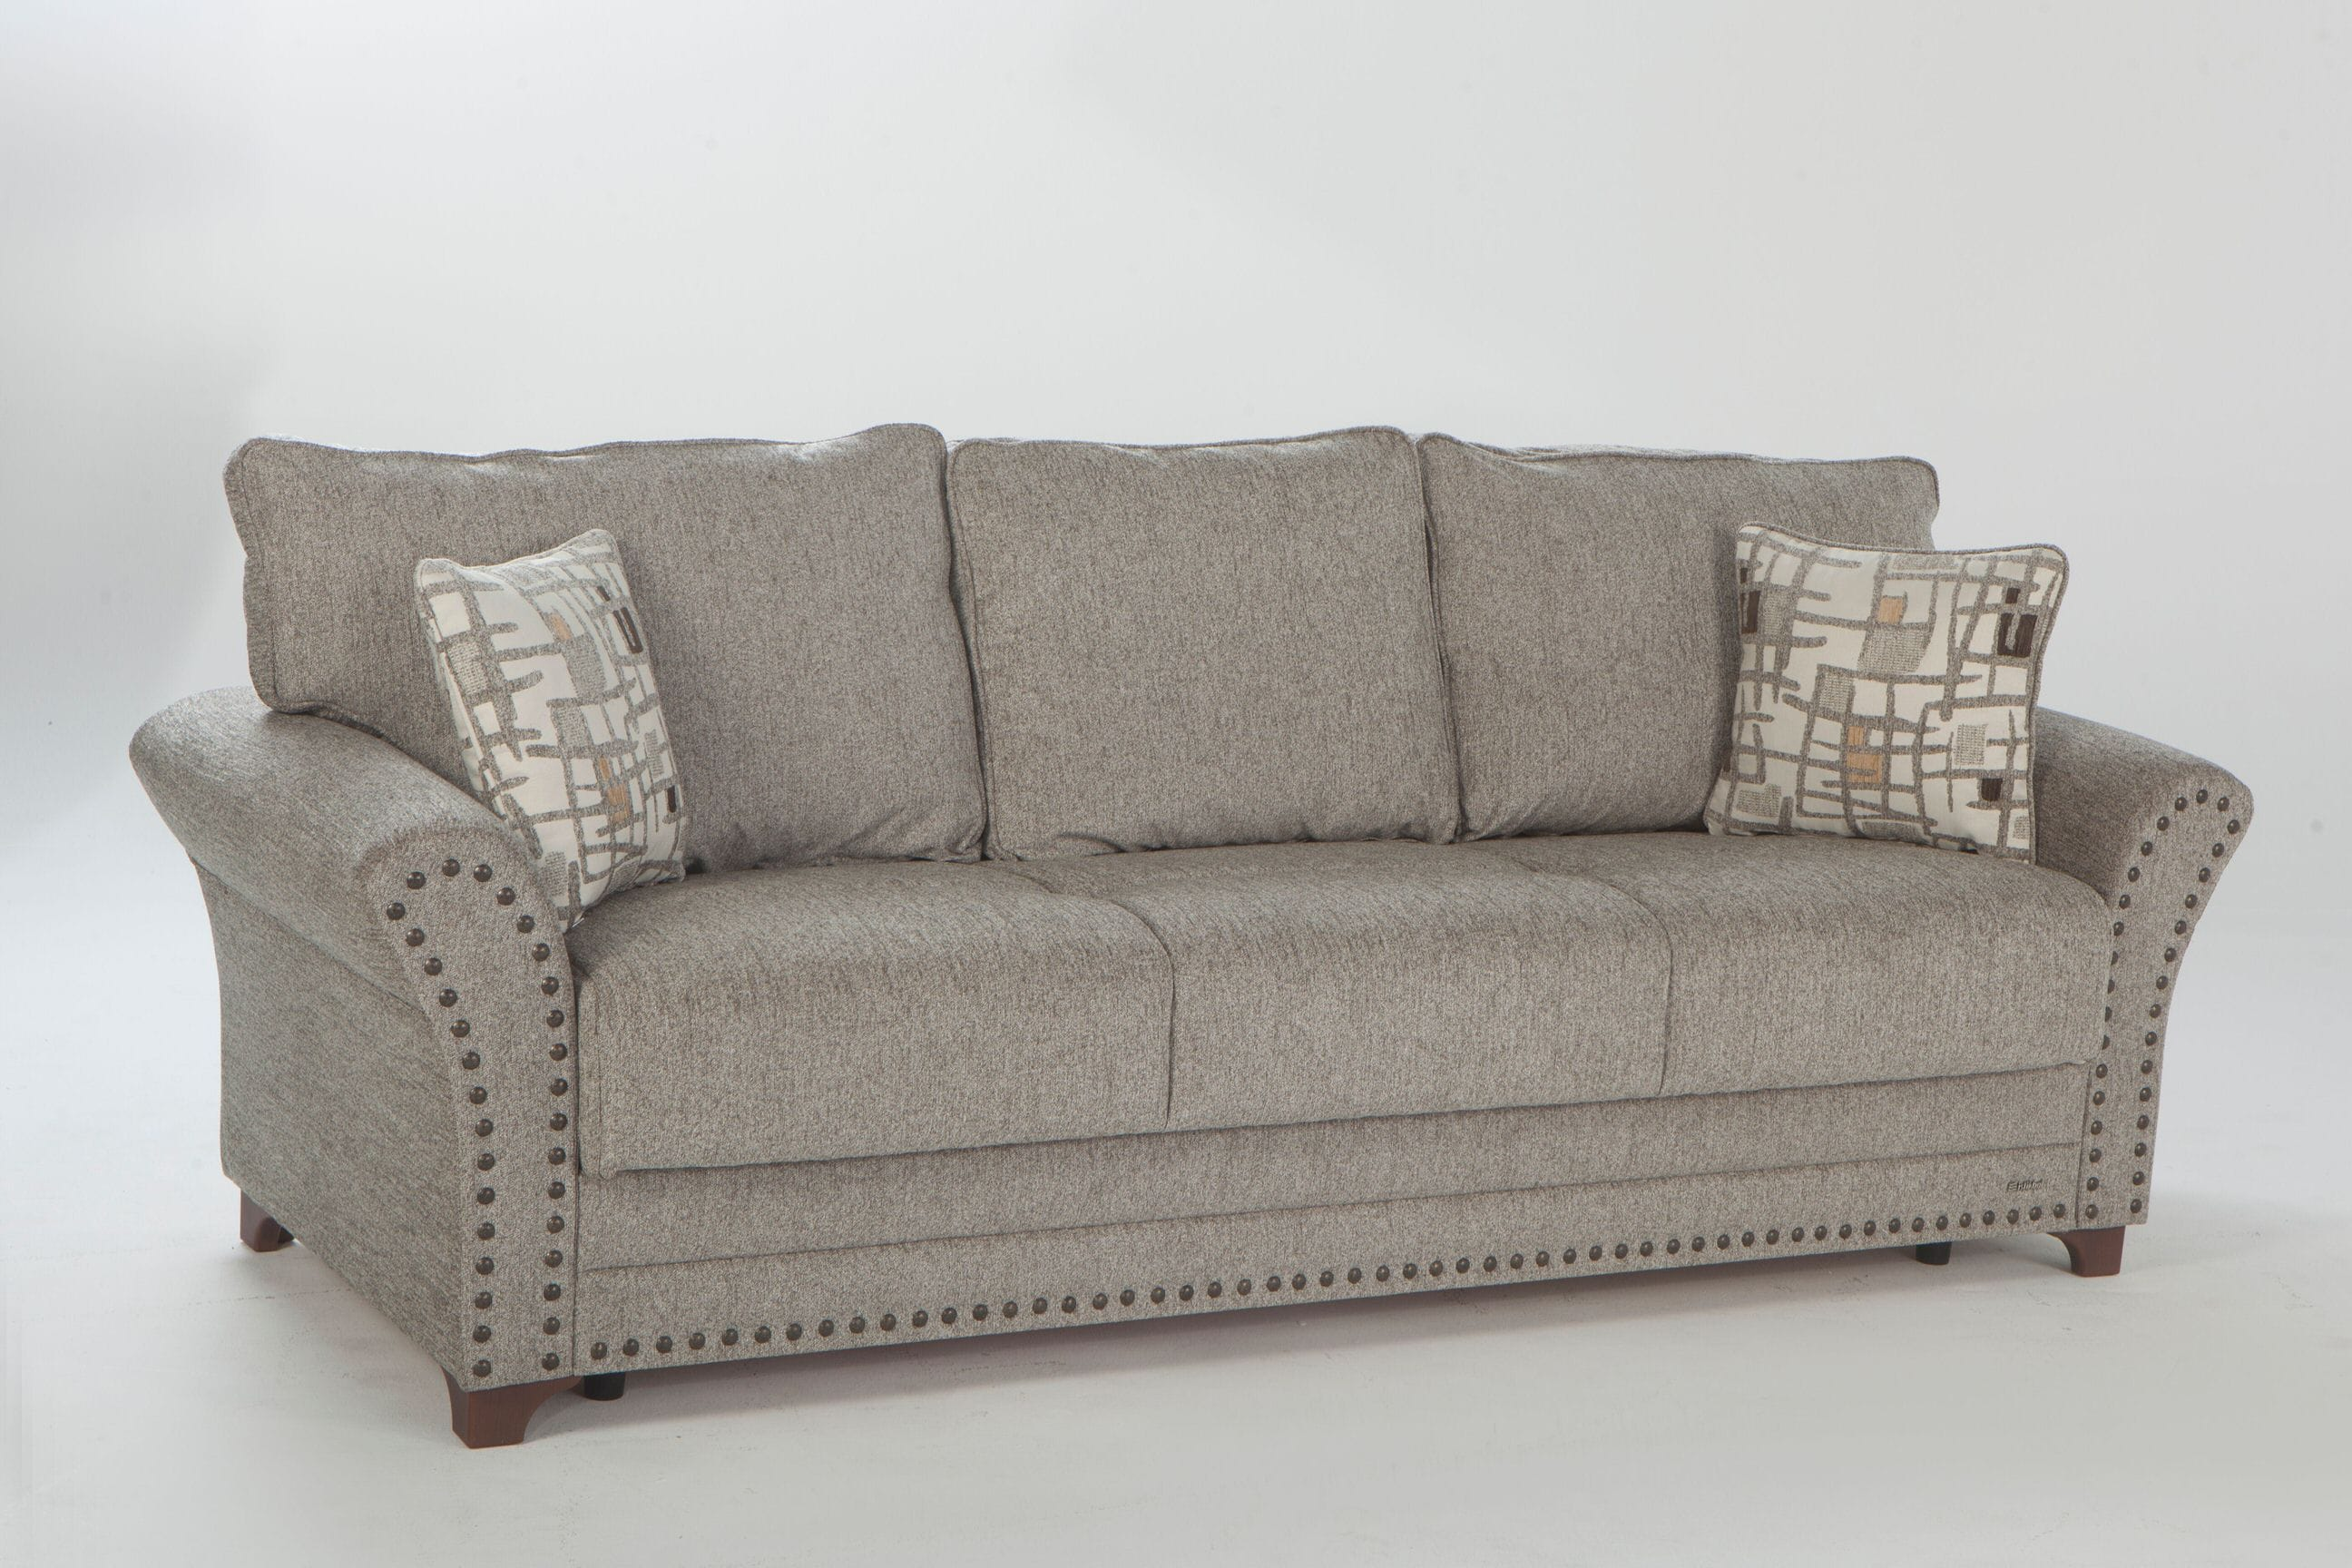 Brady Aristo Brown Convertible Sofa Bed w/ Memory Foam by Istikbal ...